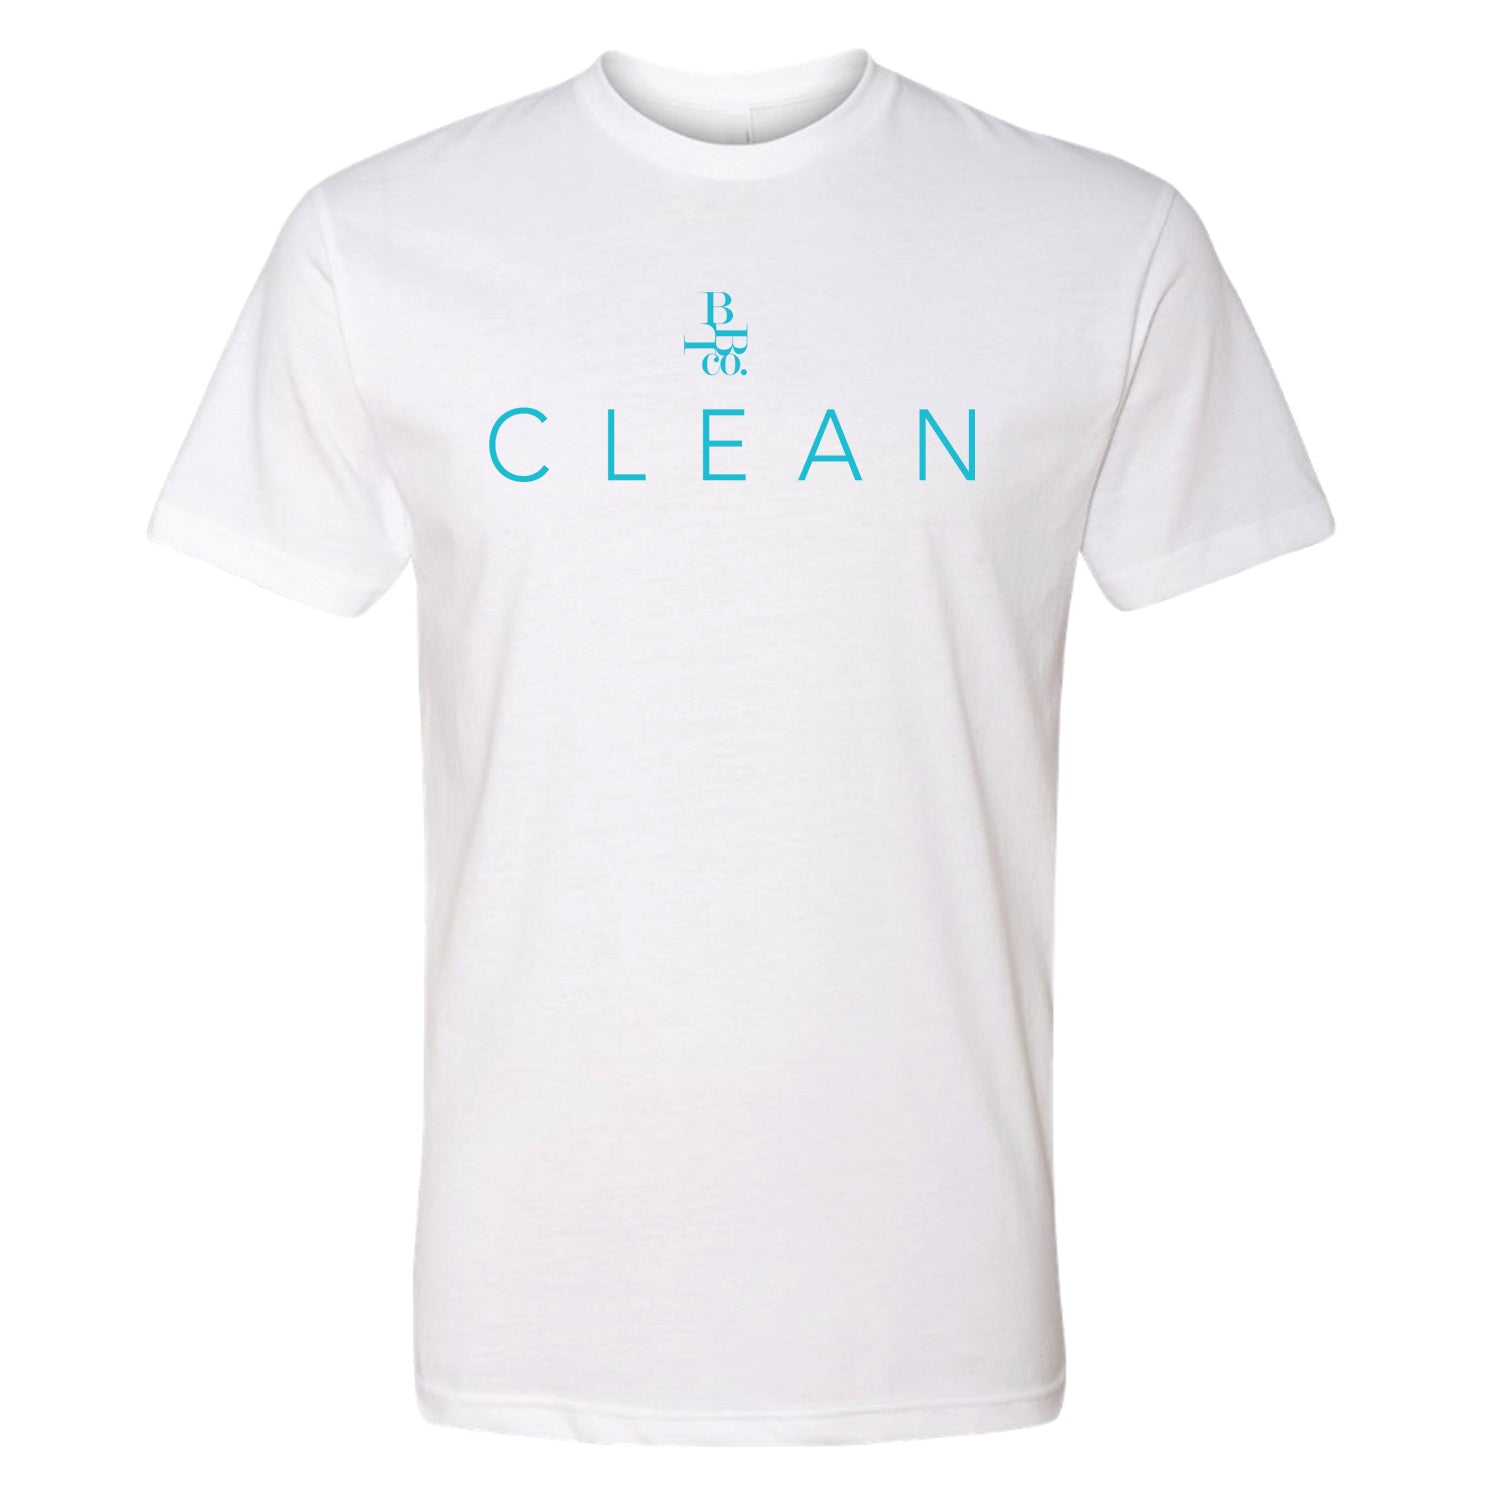 """CLEAN"" Crew Neck Tee - LBBco - Living Beyond Boundaries Clothing Company"